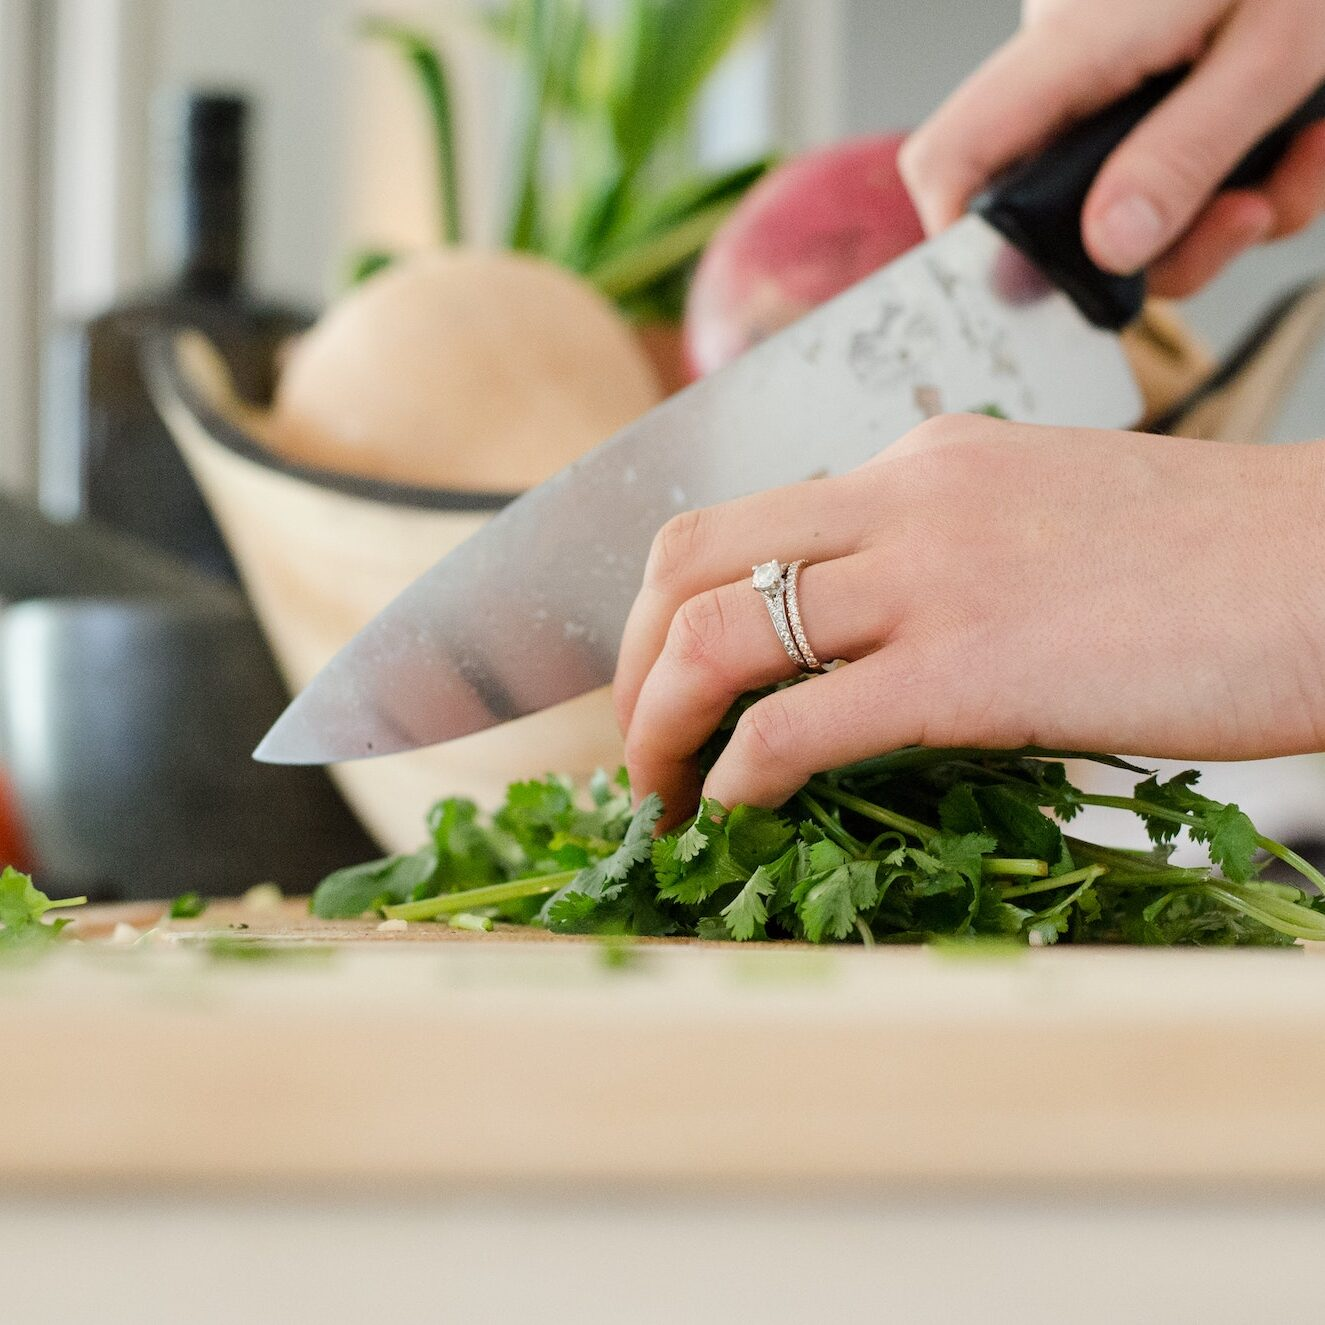 chopping herbs | food blog | Photo by Alyson McPhee on Unsplash | hearth health happiness